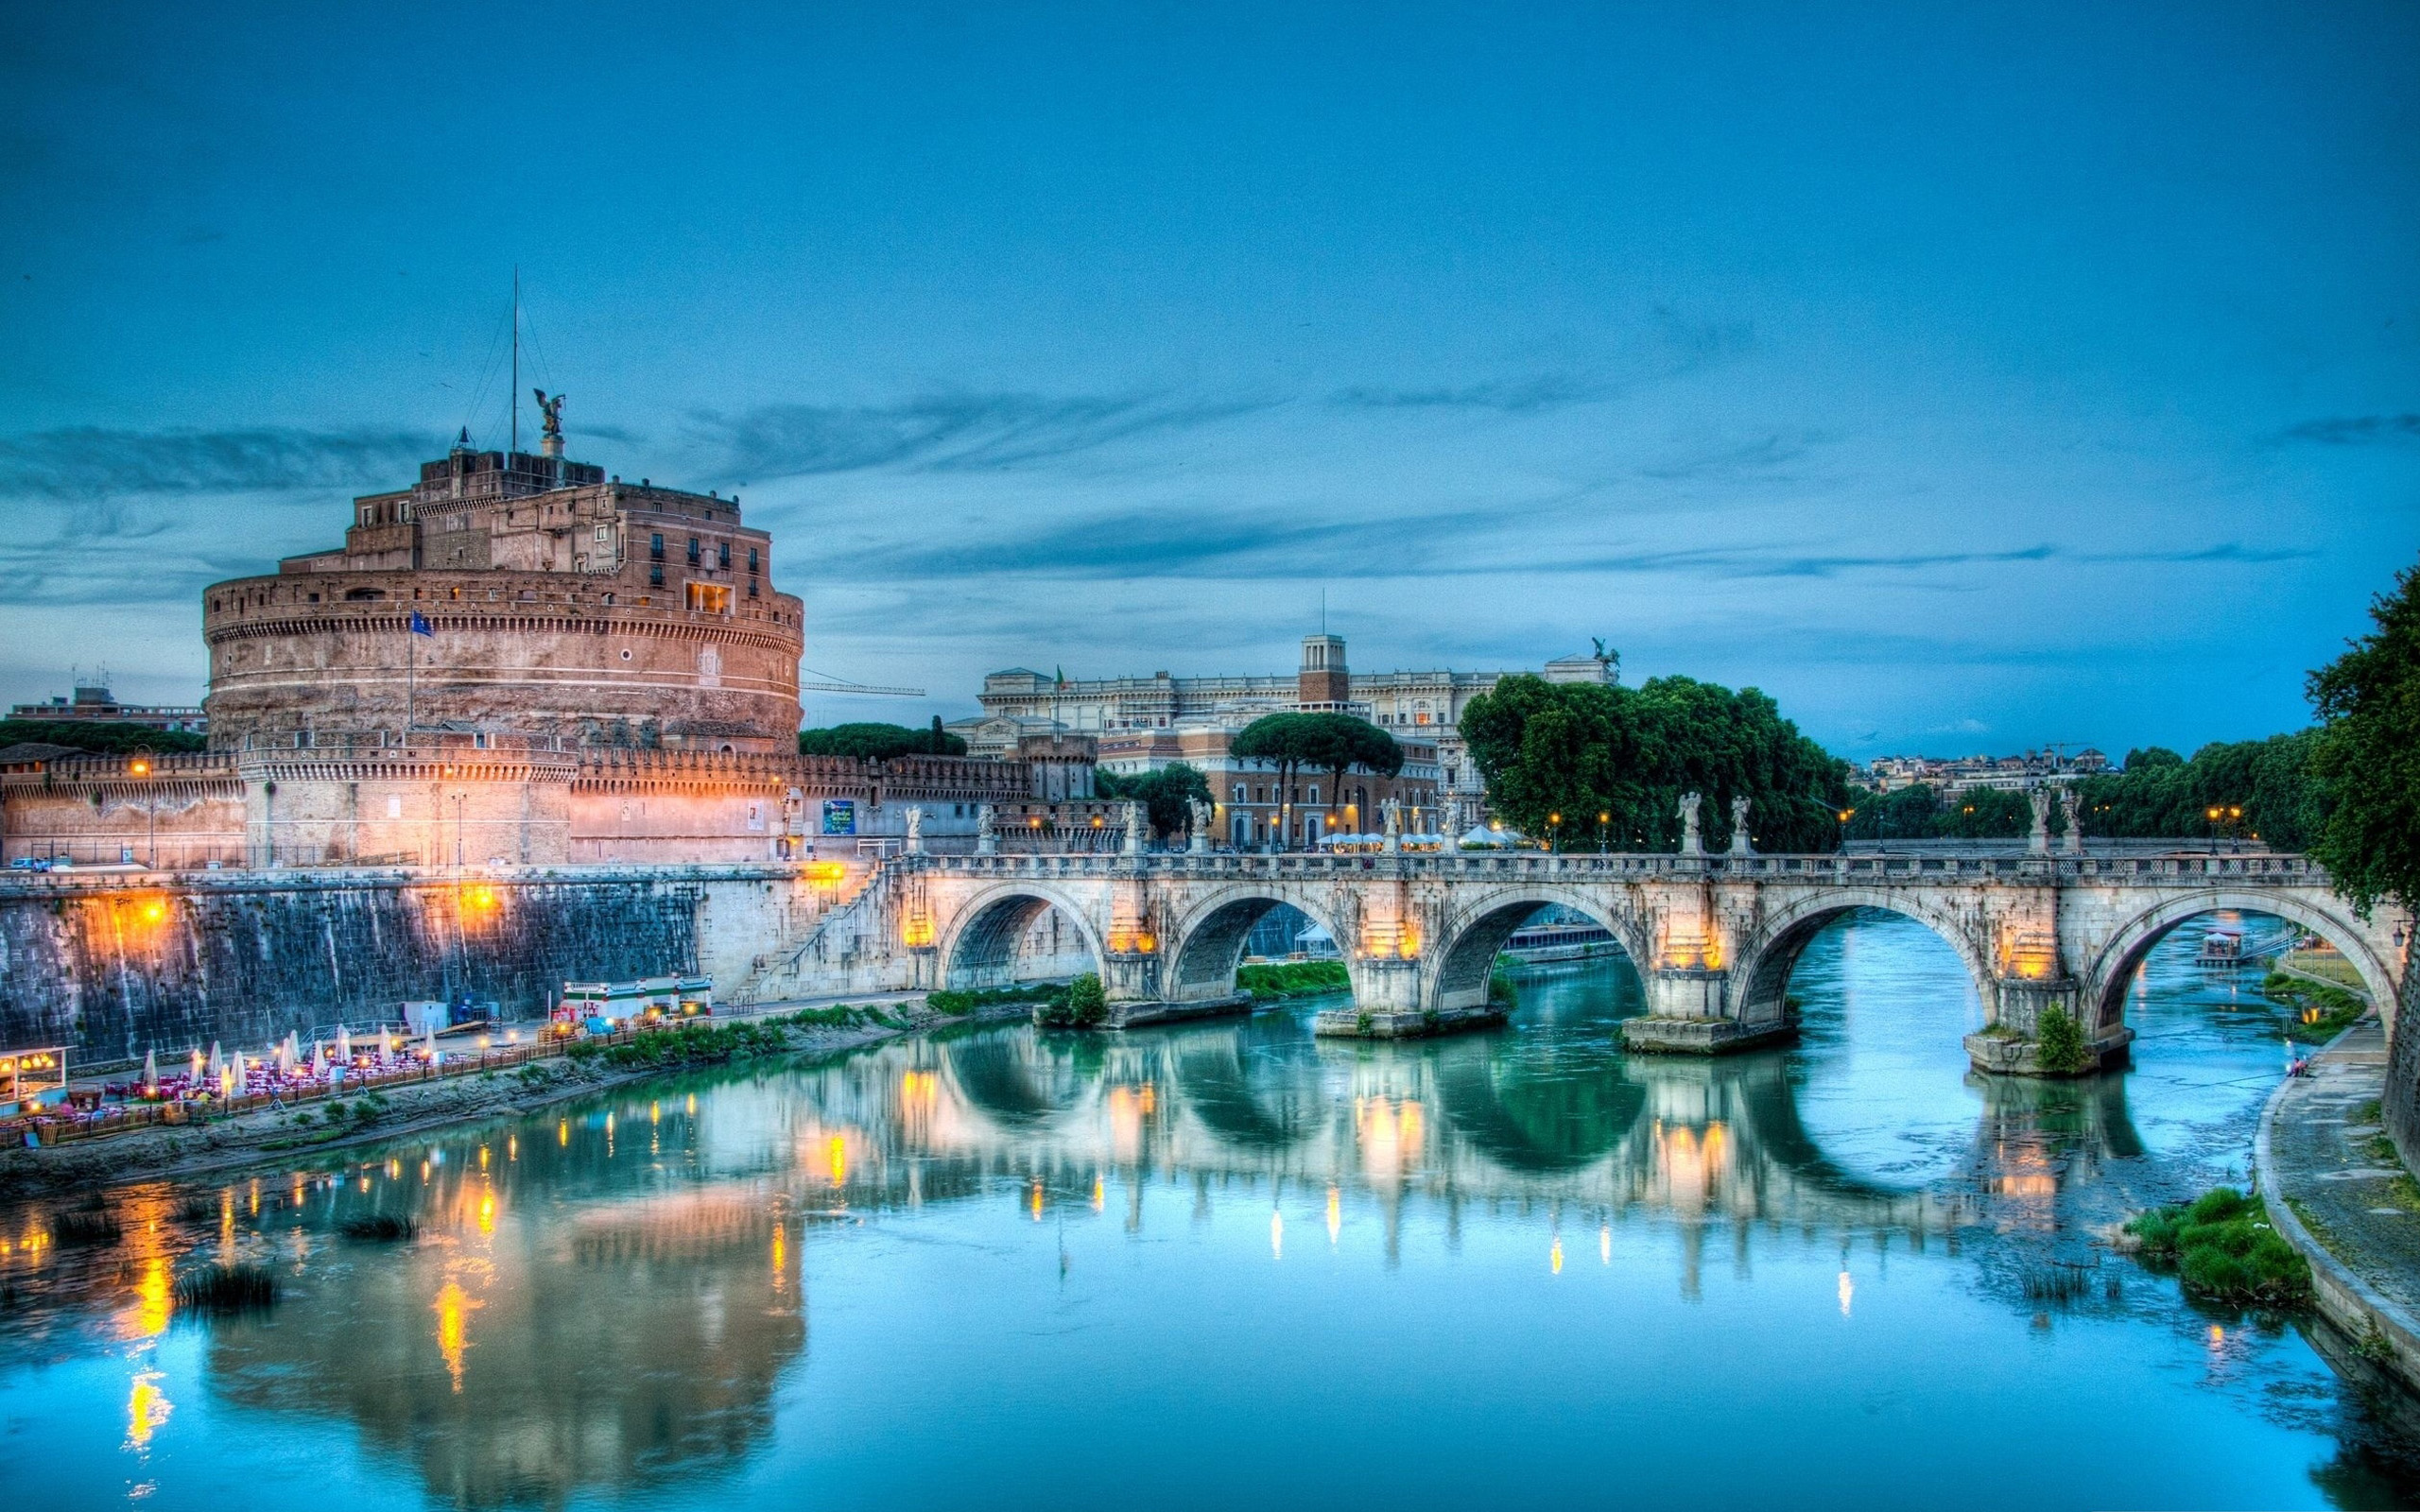 ... -of-Hadrian-Parco-...